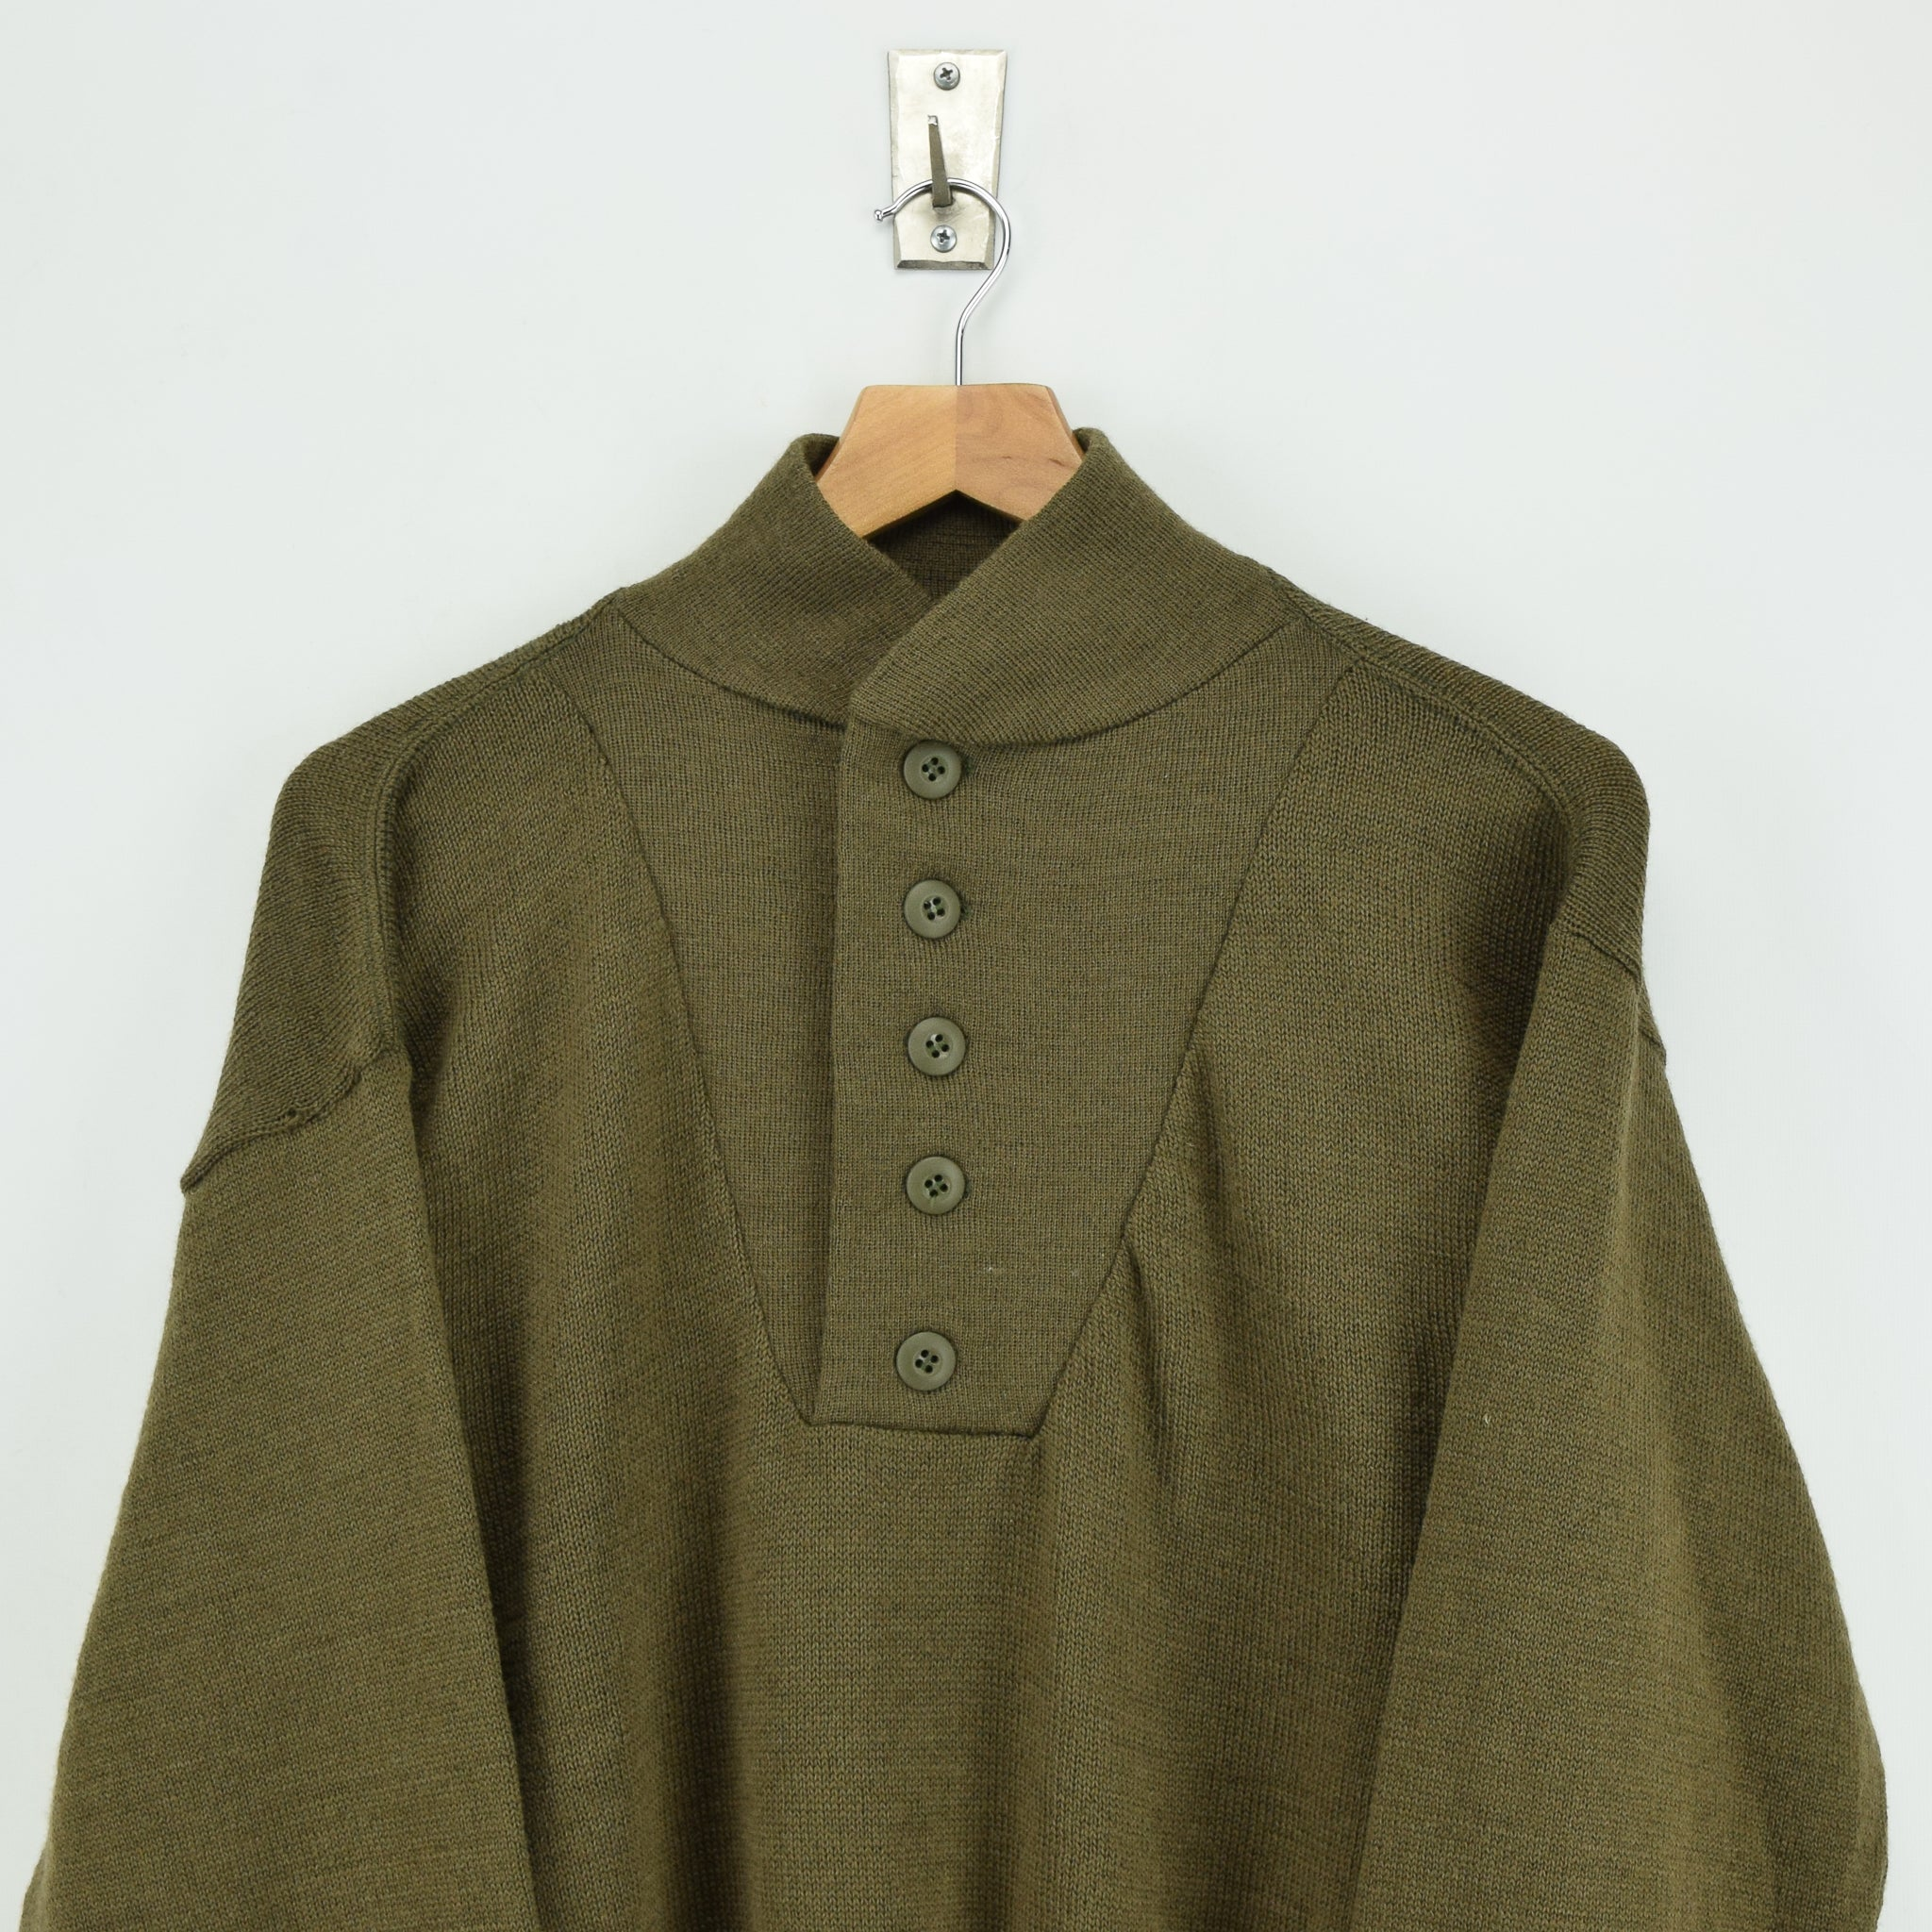 Vintage 60s US Army Military Sweater Olive Wool USA Made Button Pullover M chest